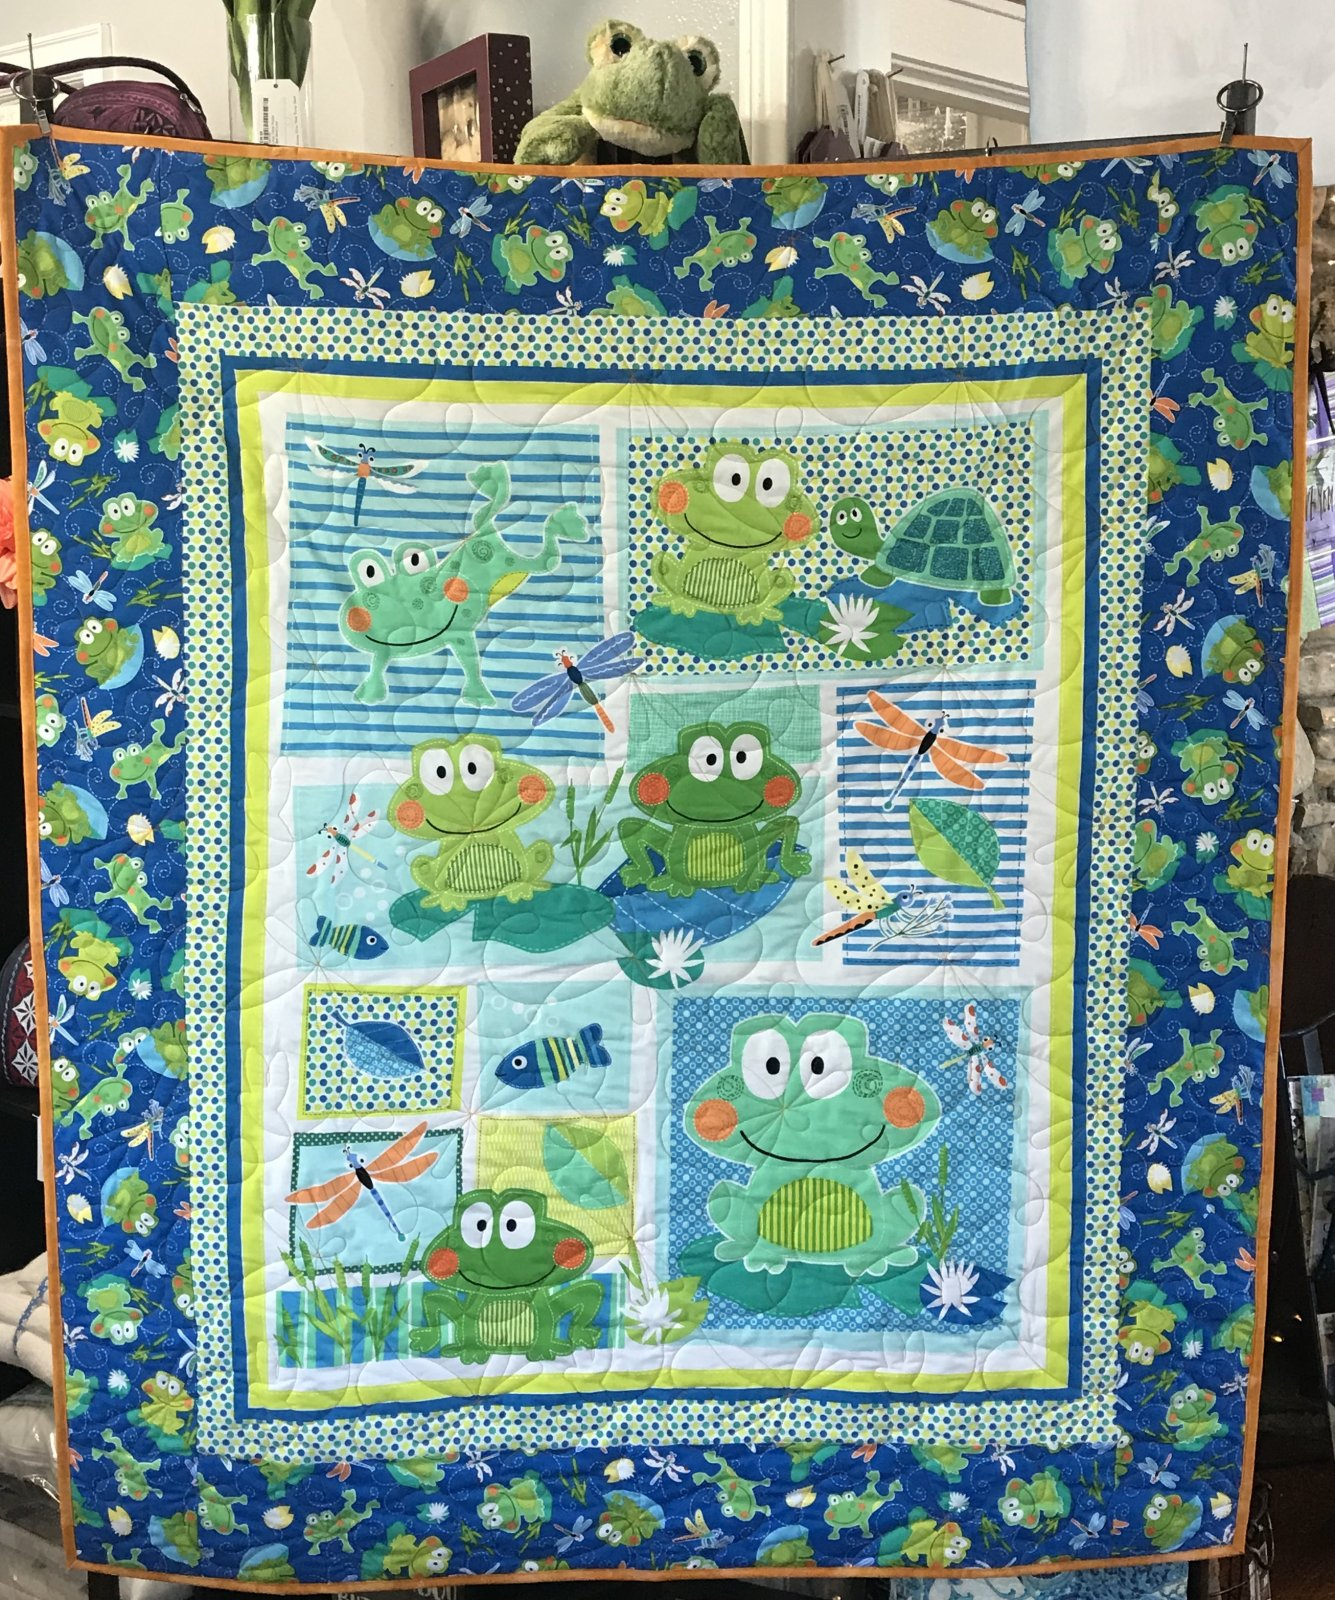 Hippity Hoppity Frog Quilt Kit 46 x 56, blue and green